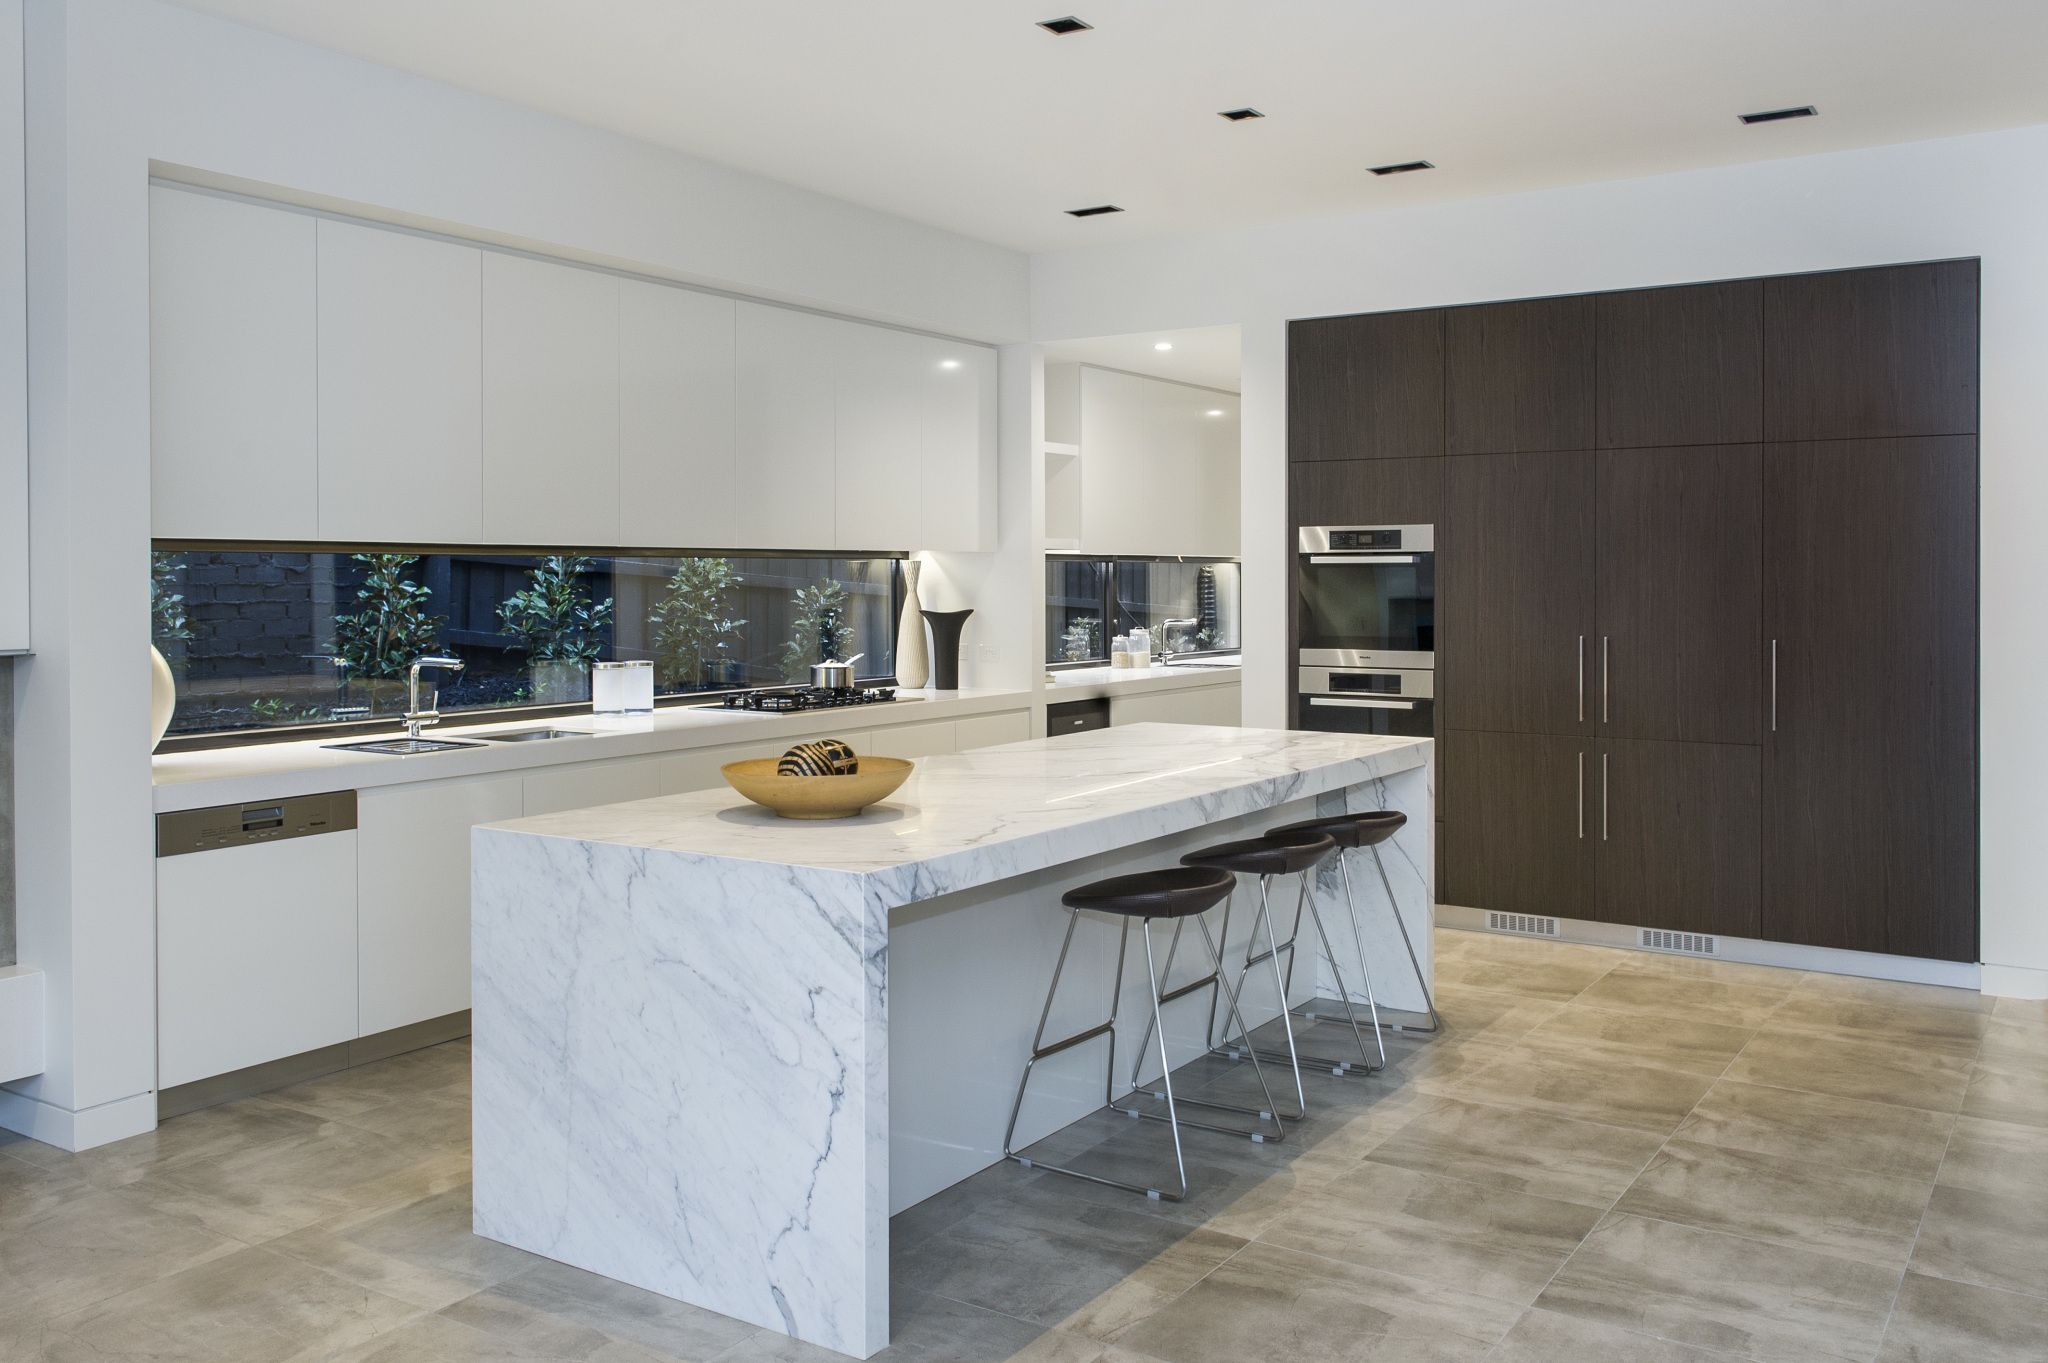 Basic kitchen cabinets  Kitchen Cabinetry u Choosing the finish that is right for you